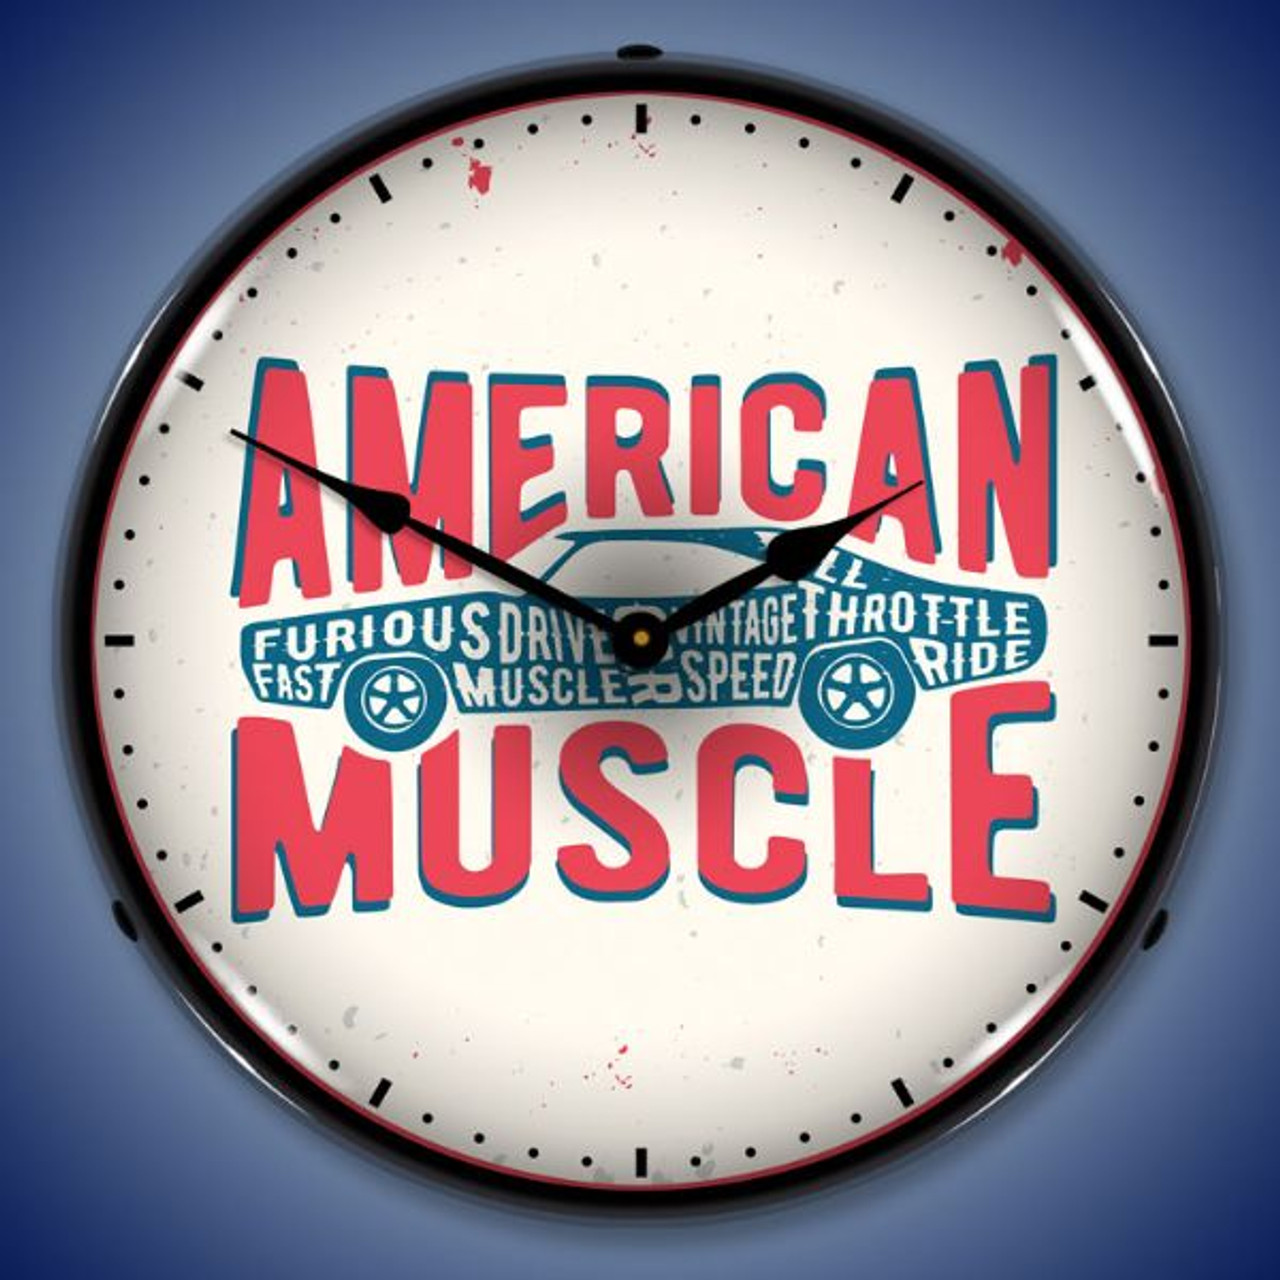 American Muscle LED Lighted Wall Clock 14 x 14 Inches